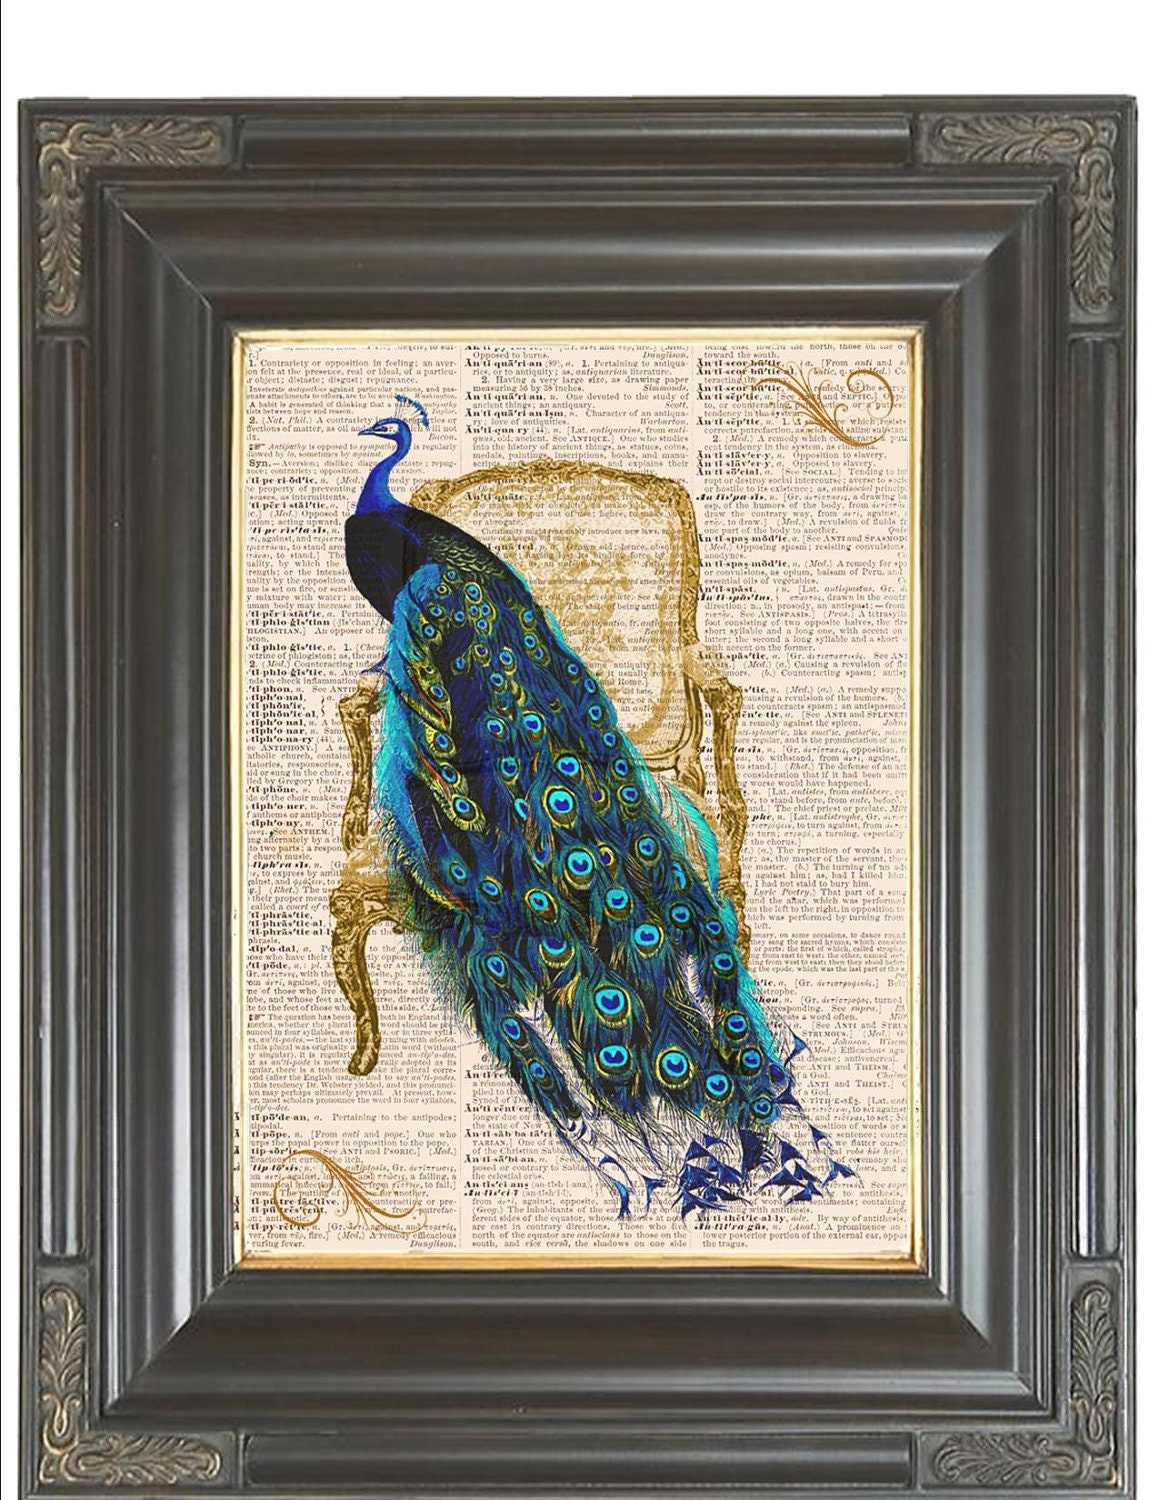 Peacock French Chair Poster Print Digital Wall Art Printed On